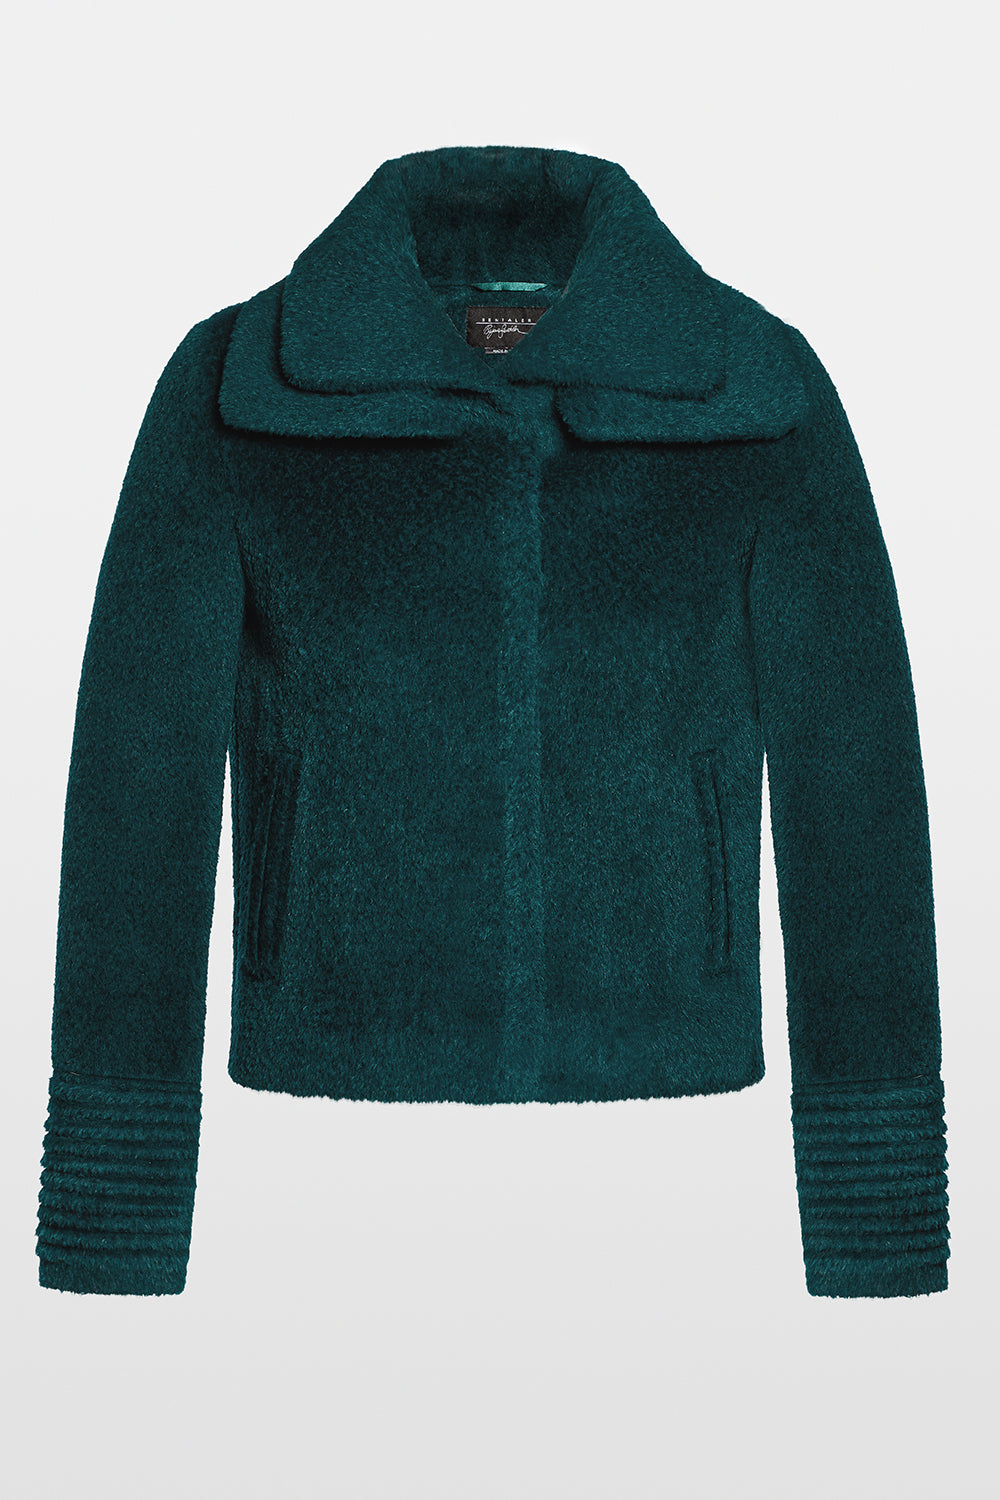 Sentaler Bouclé Alpaca Moto Jacket with Signature Double Collar featured in Bouclé Alpaca and available in Emerald Green. Seen off model.